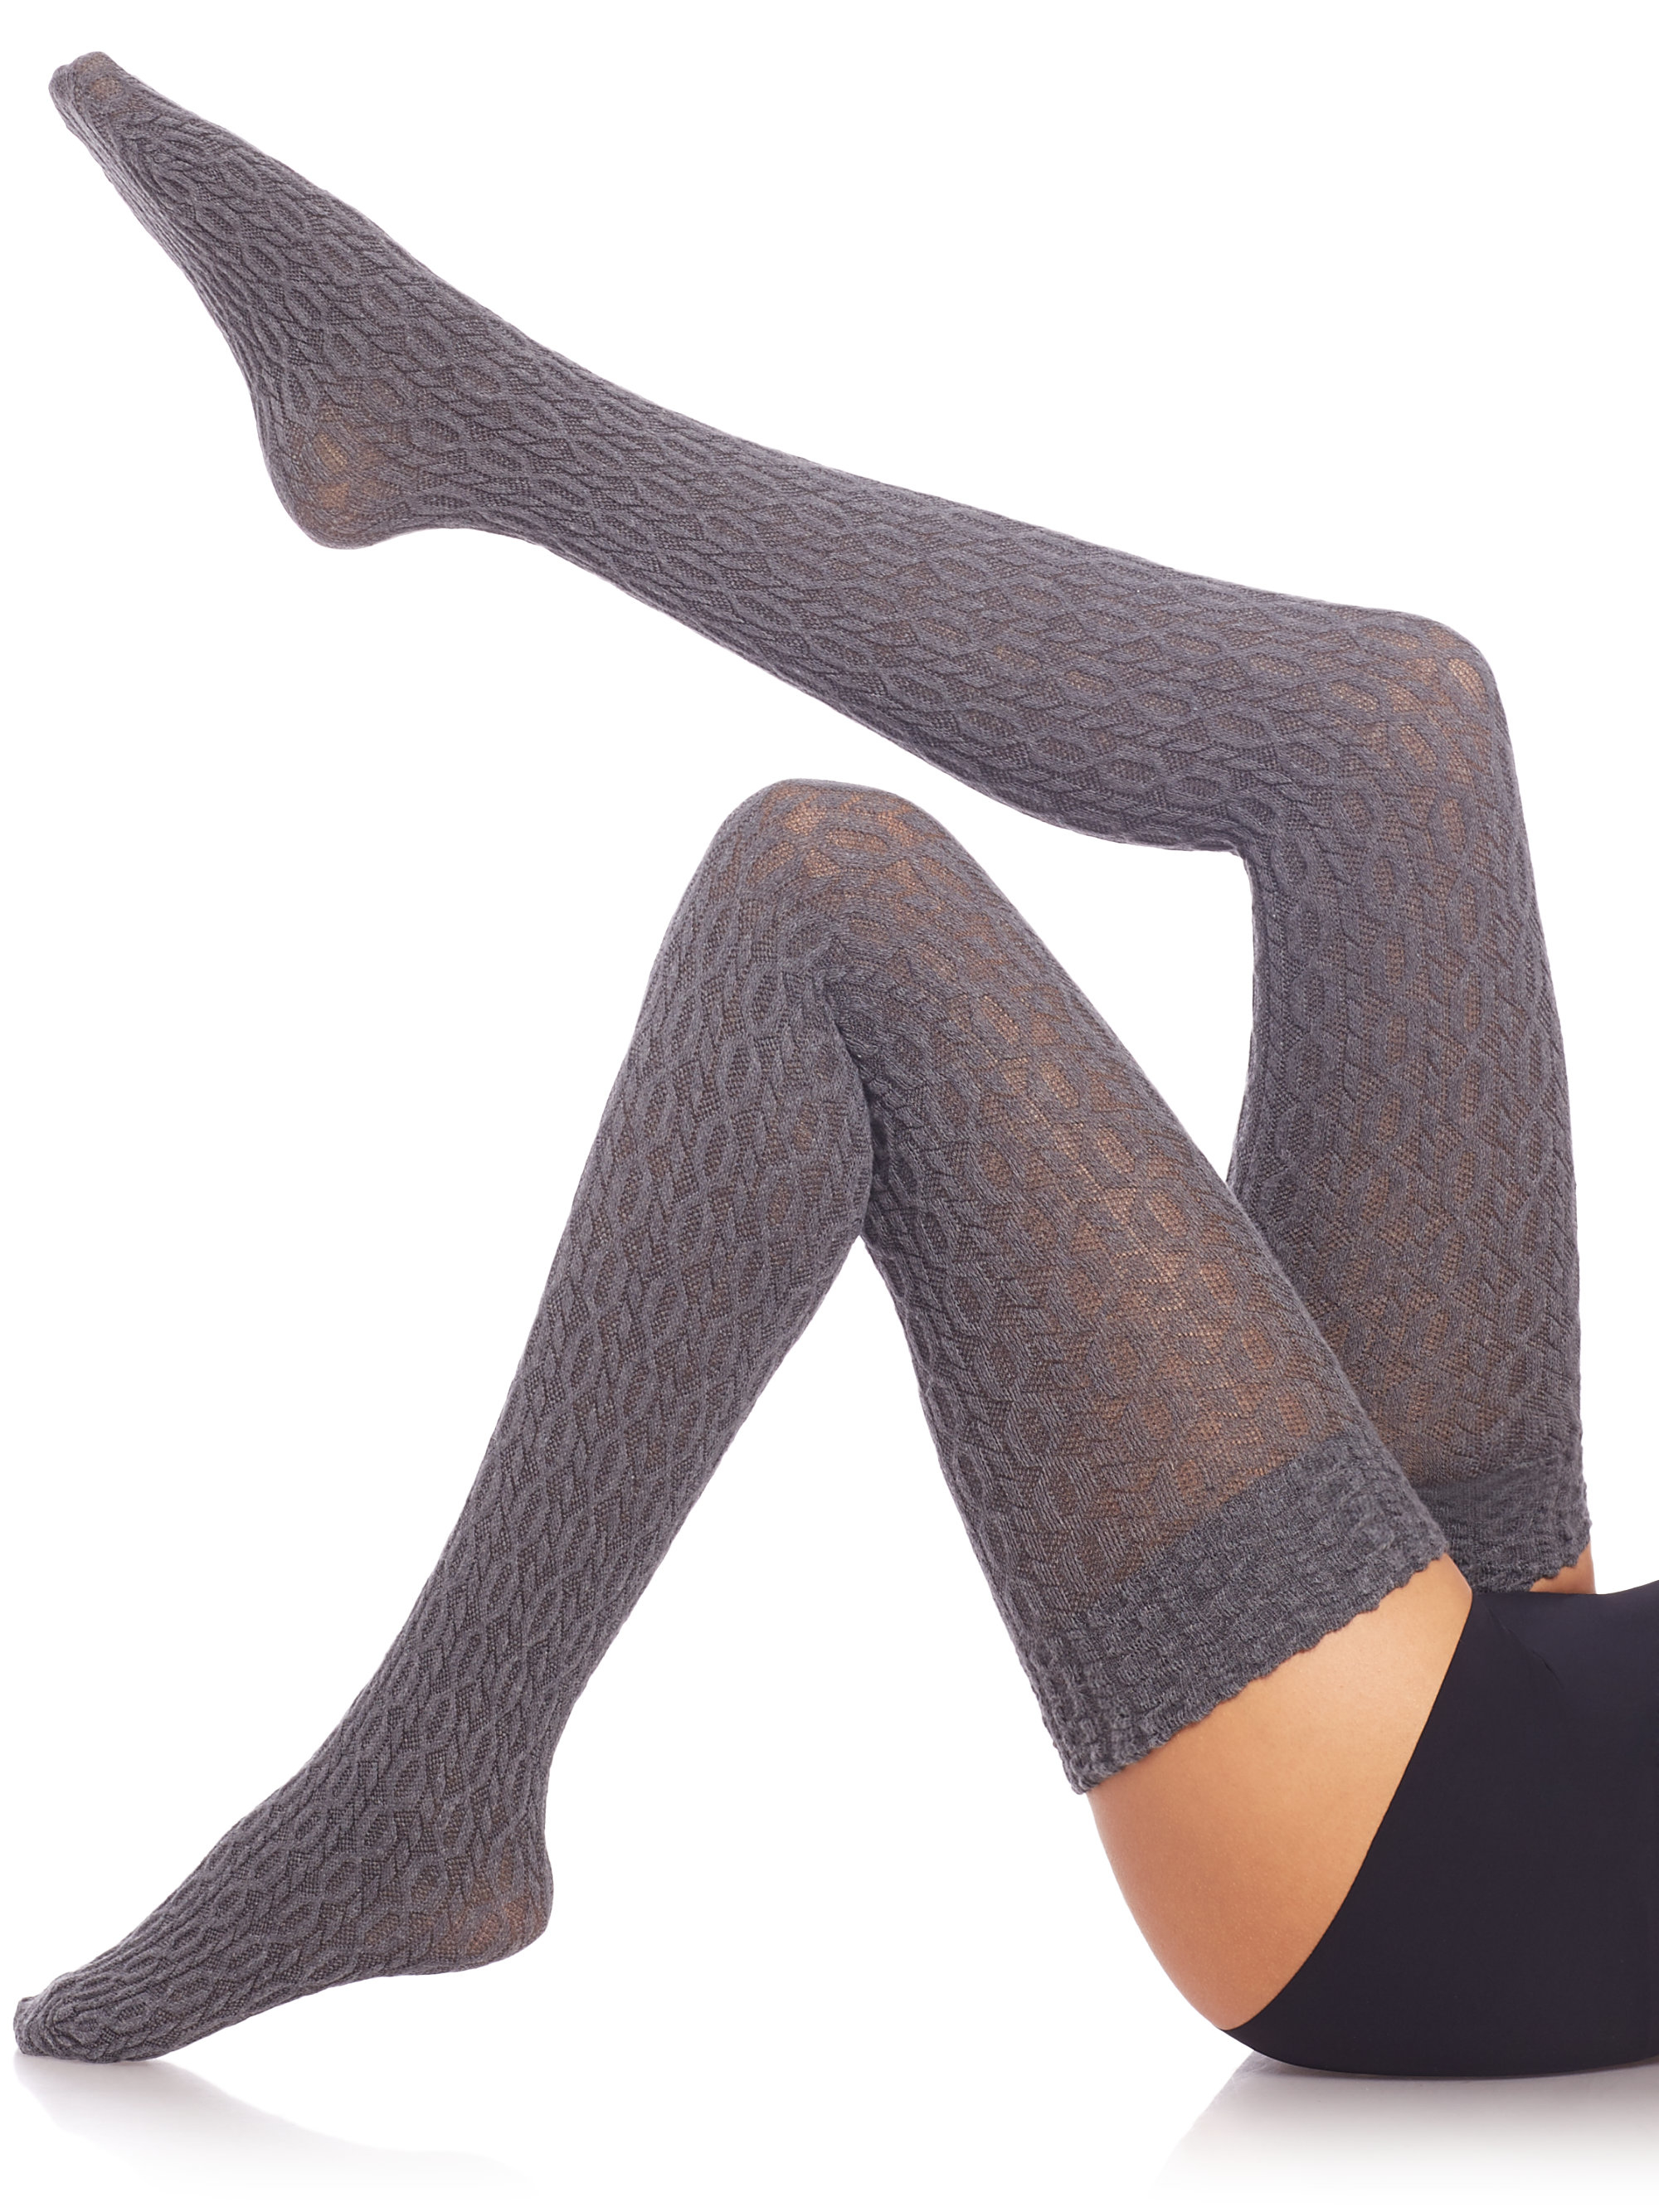 d9e5be754 Fogal Eyrin Cable-knit Thigh Highs in Gray - Lyst